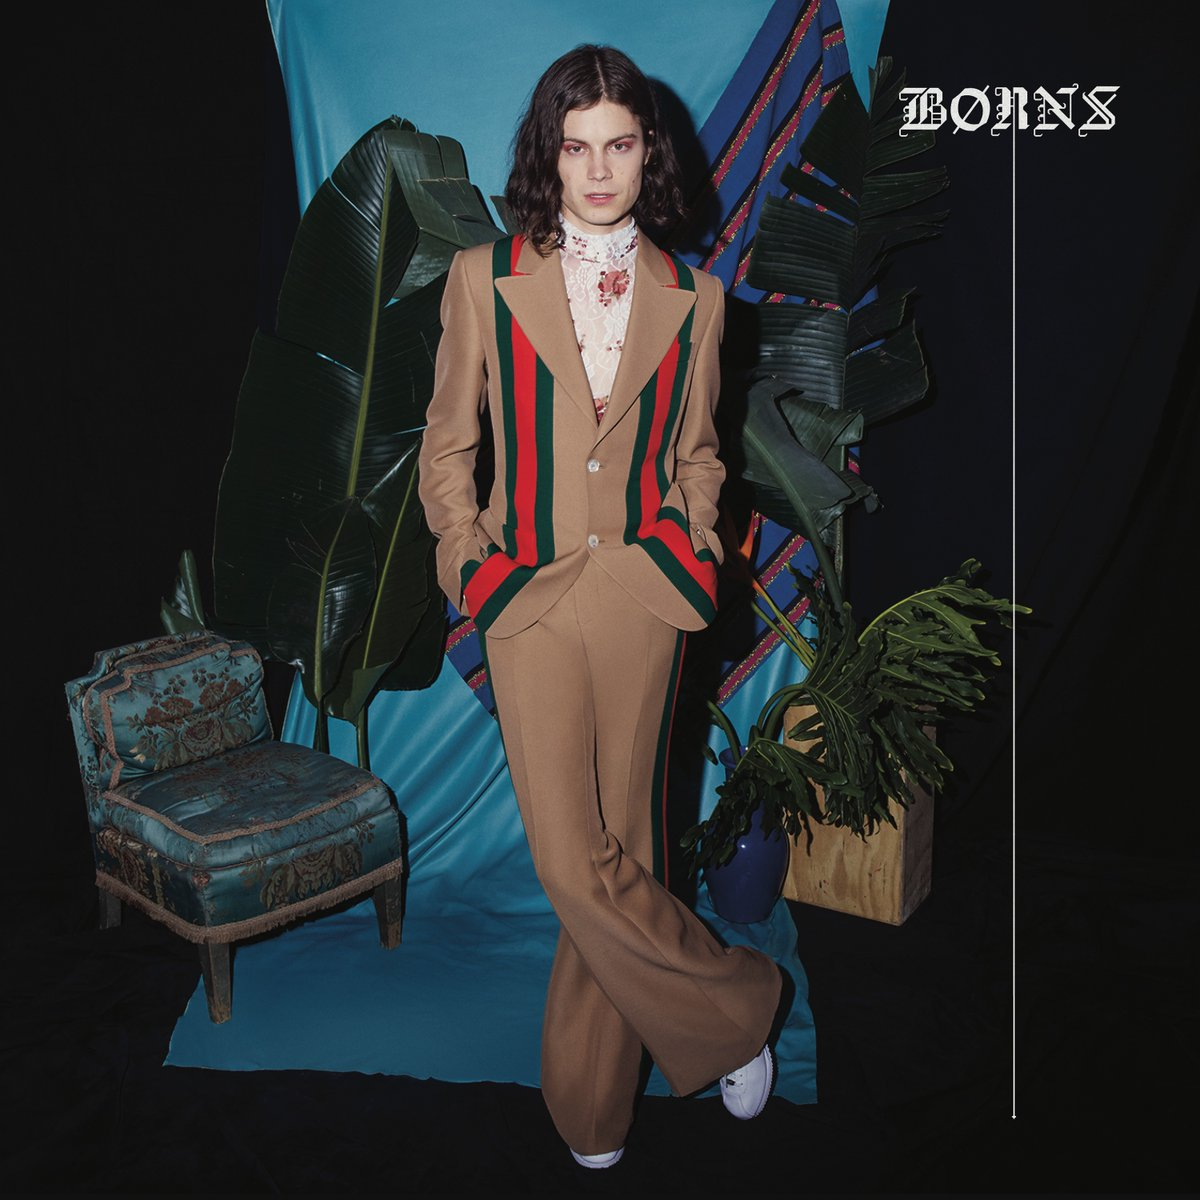 BØRNS - Blue Madonna (2018)